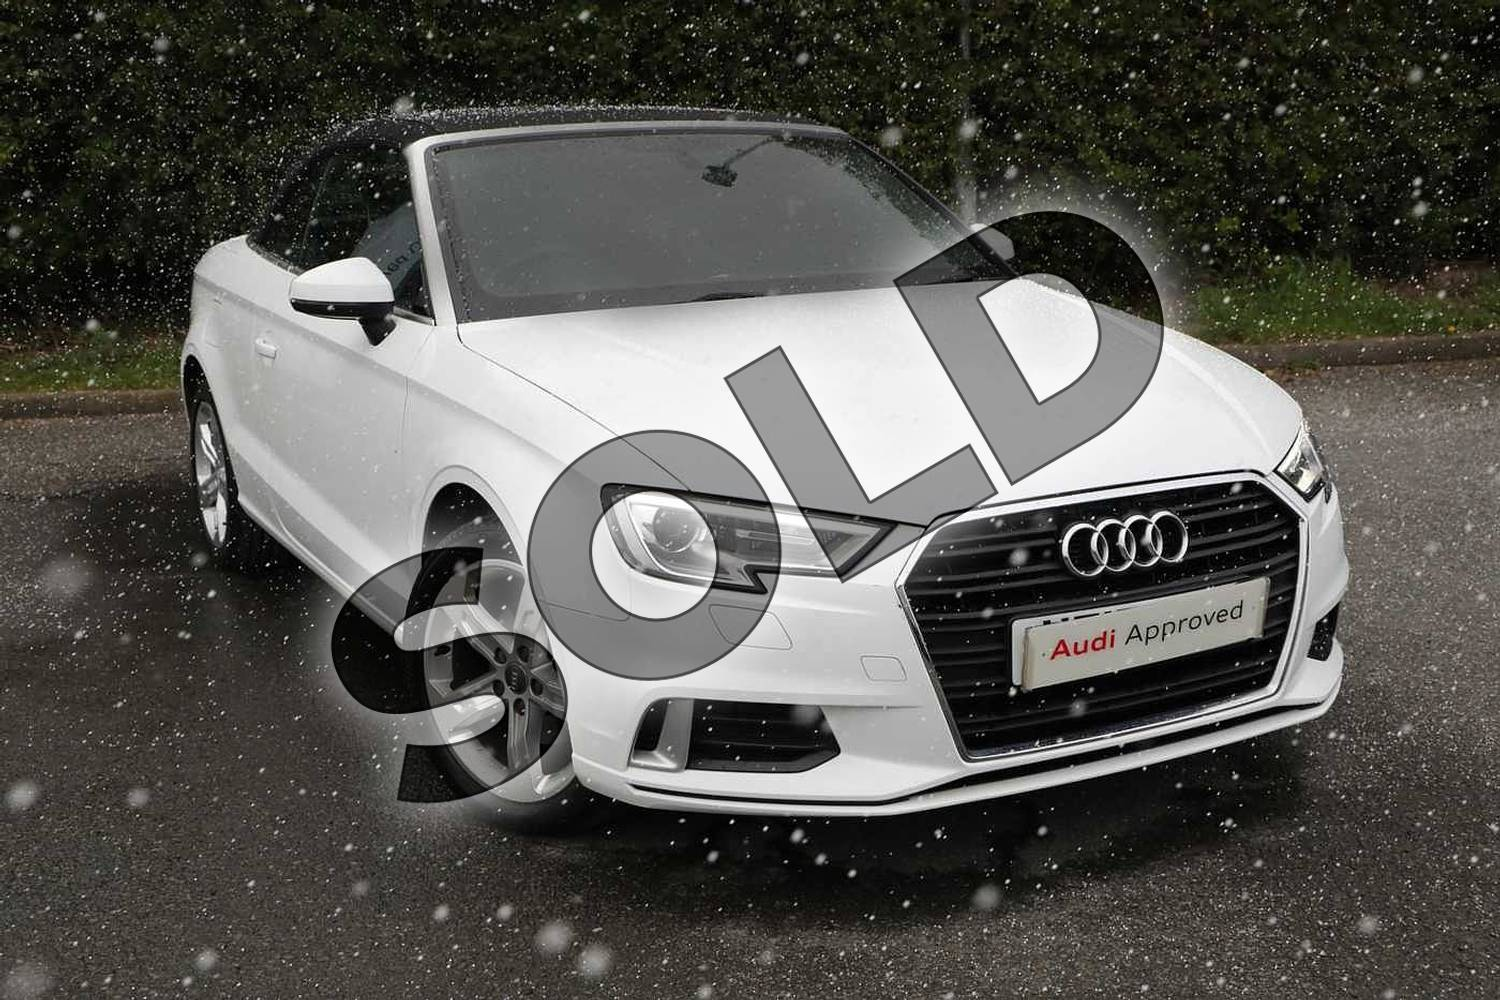 2017 Audi A3 Diesel Cabriolet 1.6 TDI Sport 2dr in Ibis White at Worcester Audi